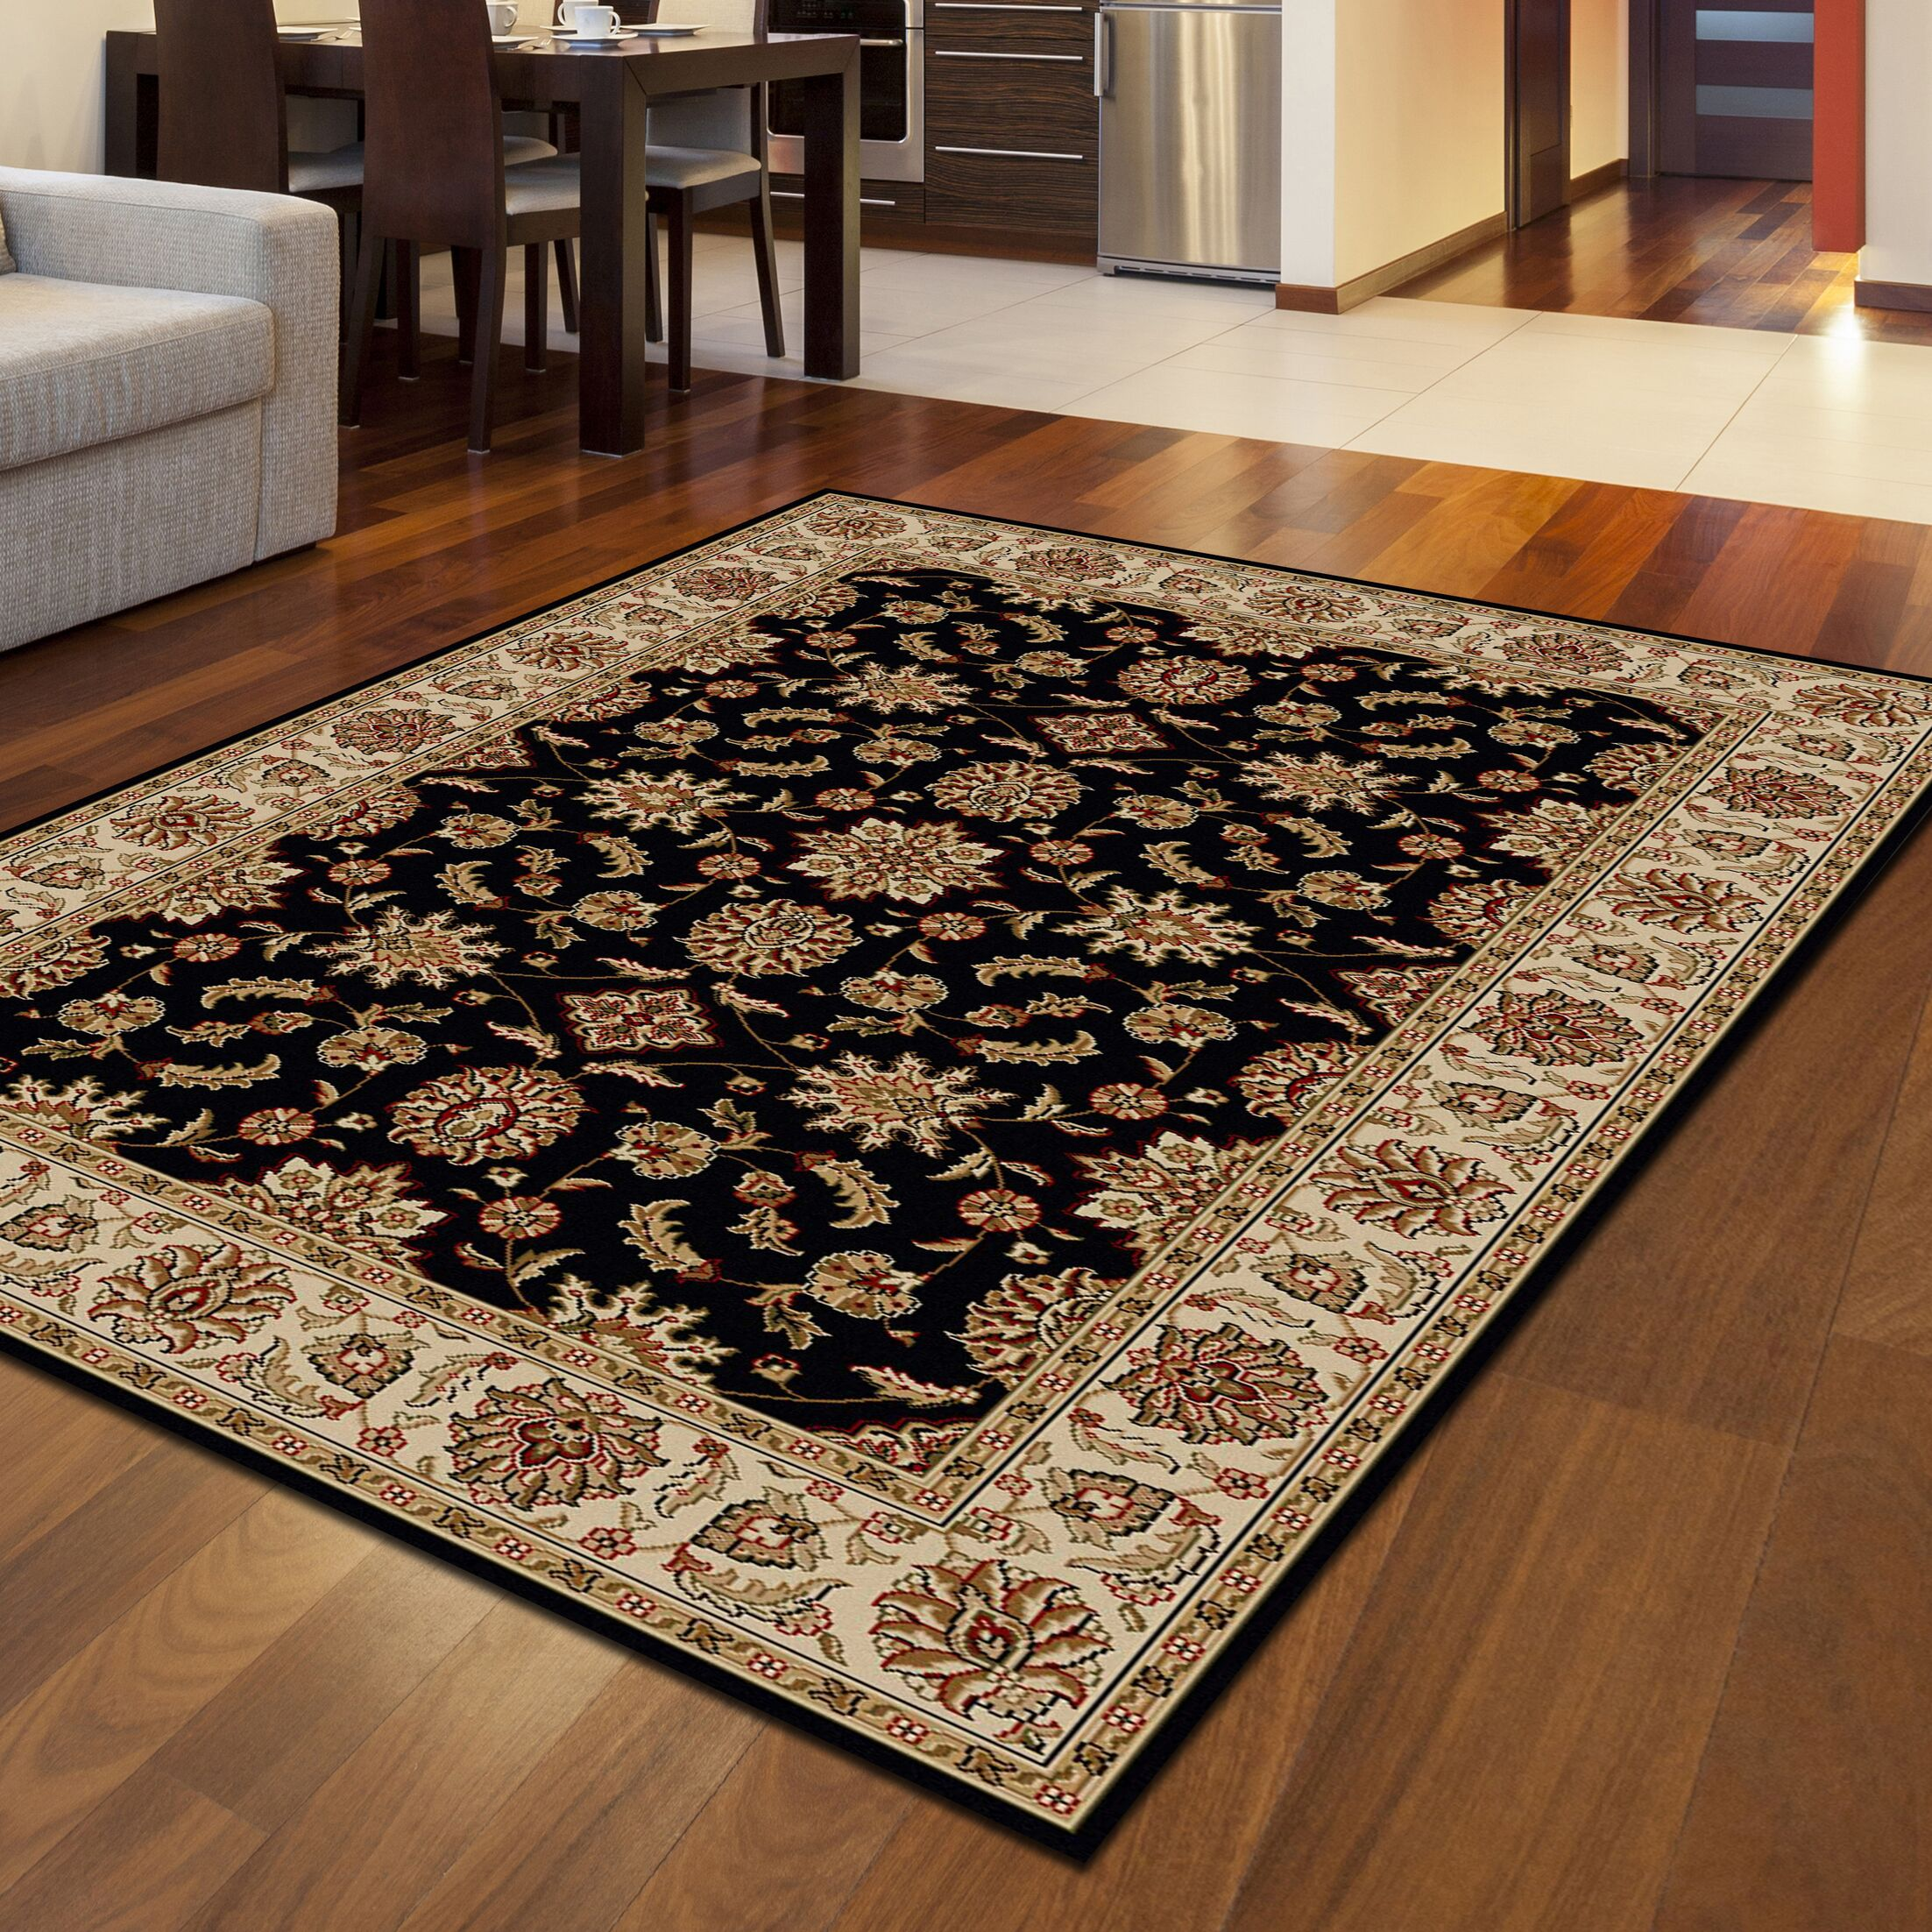 Northgate Power Loom Synthetic Black Indoor Area Rug Rug Size: Rectangle 7'9